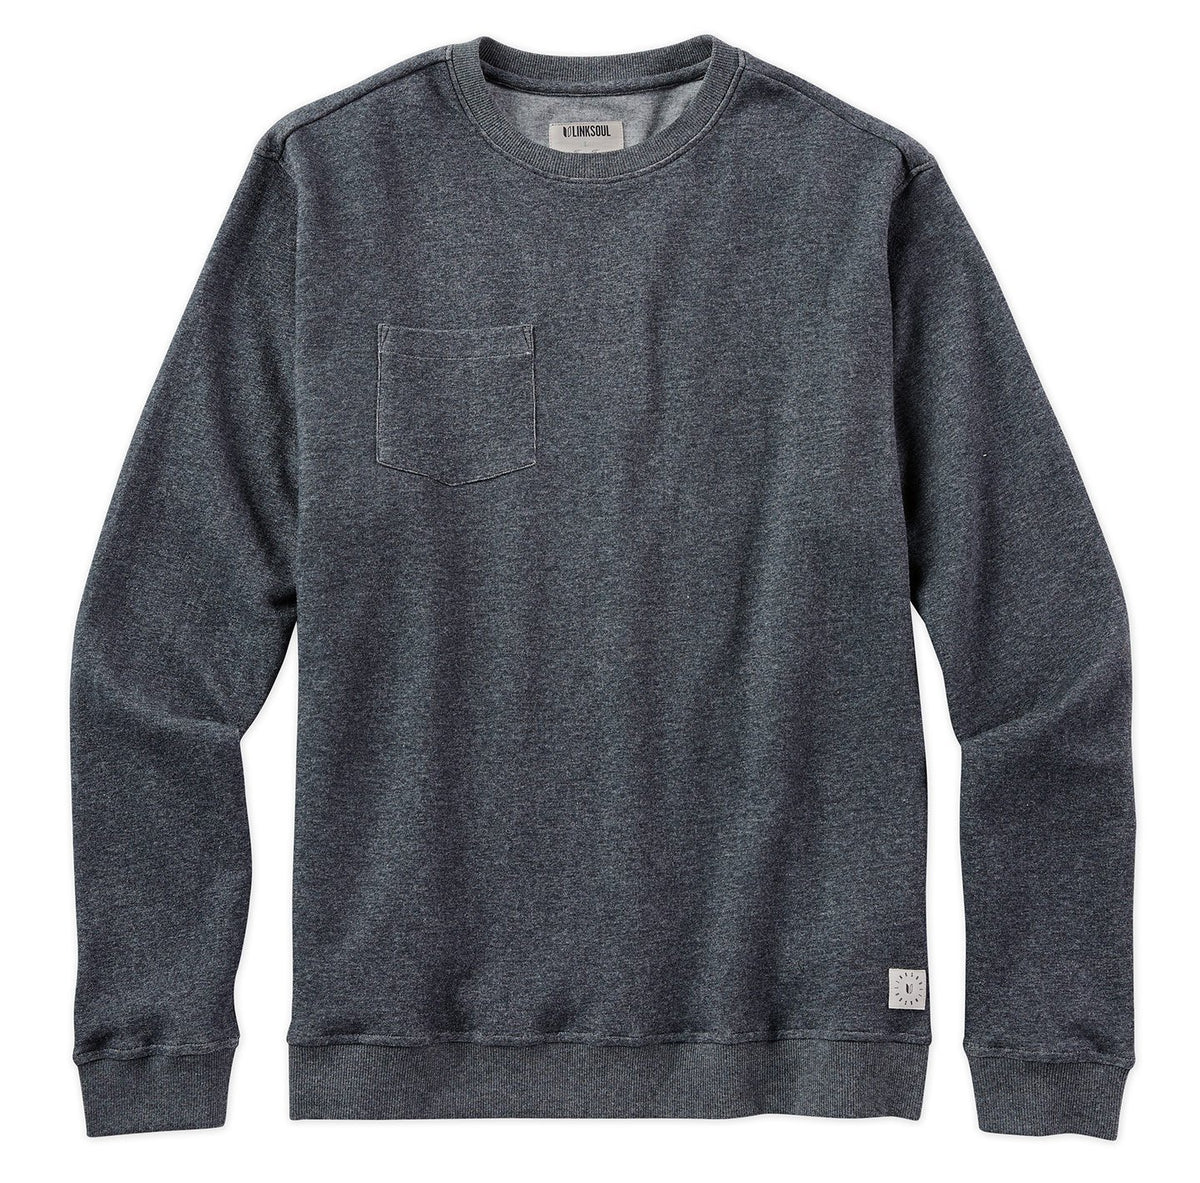 Double-Knit Pocket Crewneck Sweatshirt